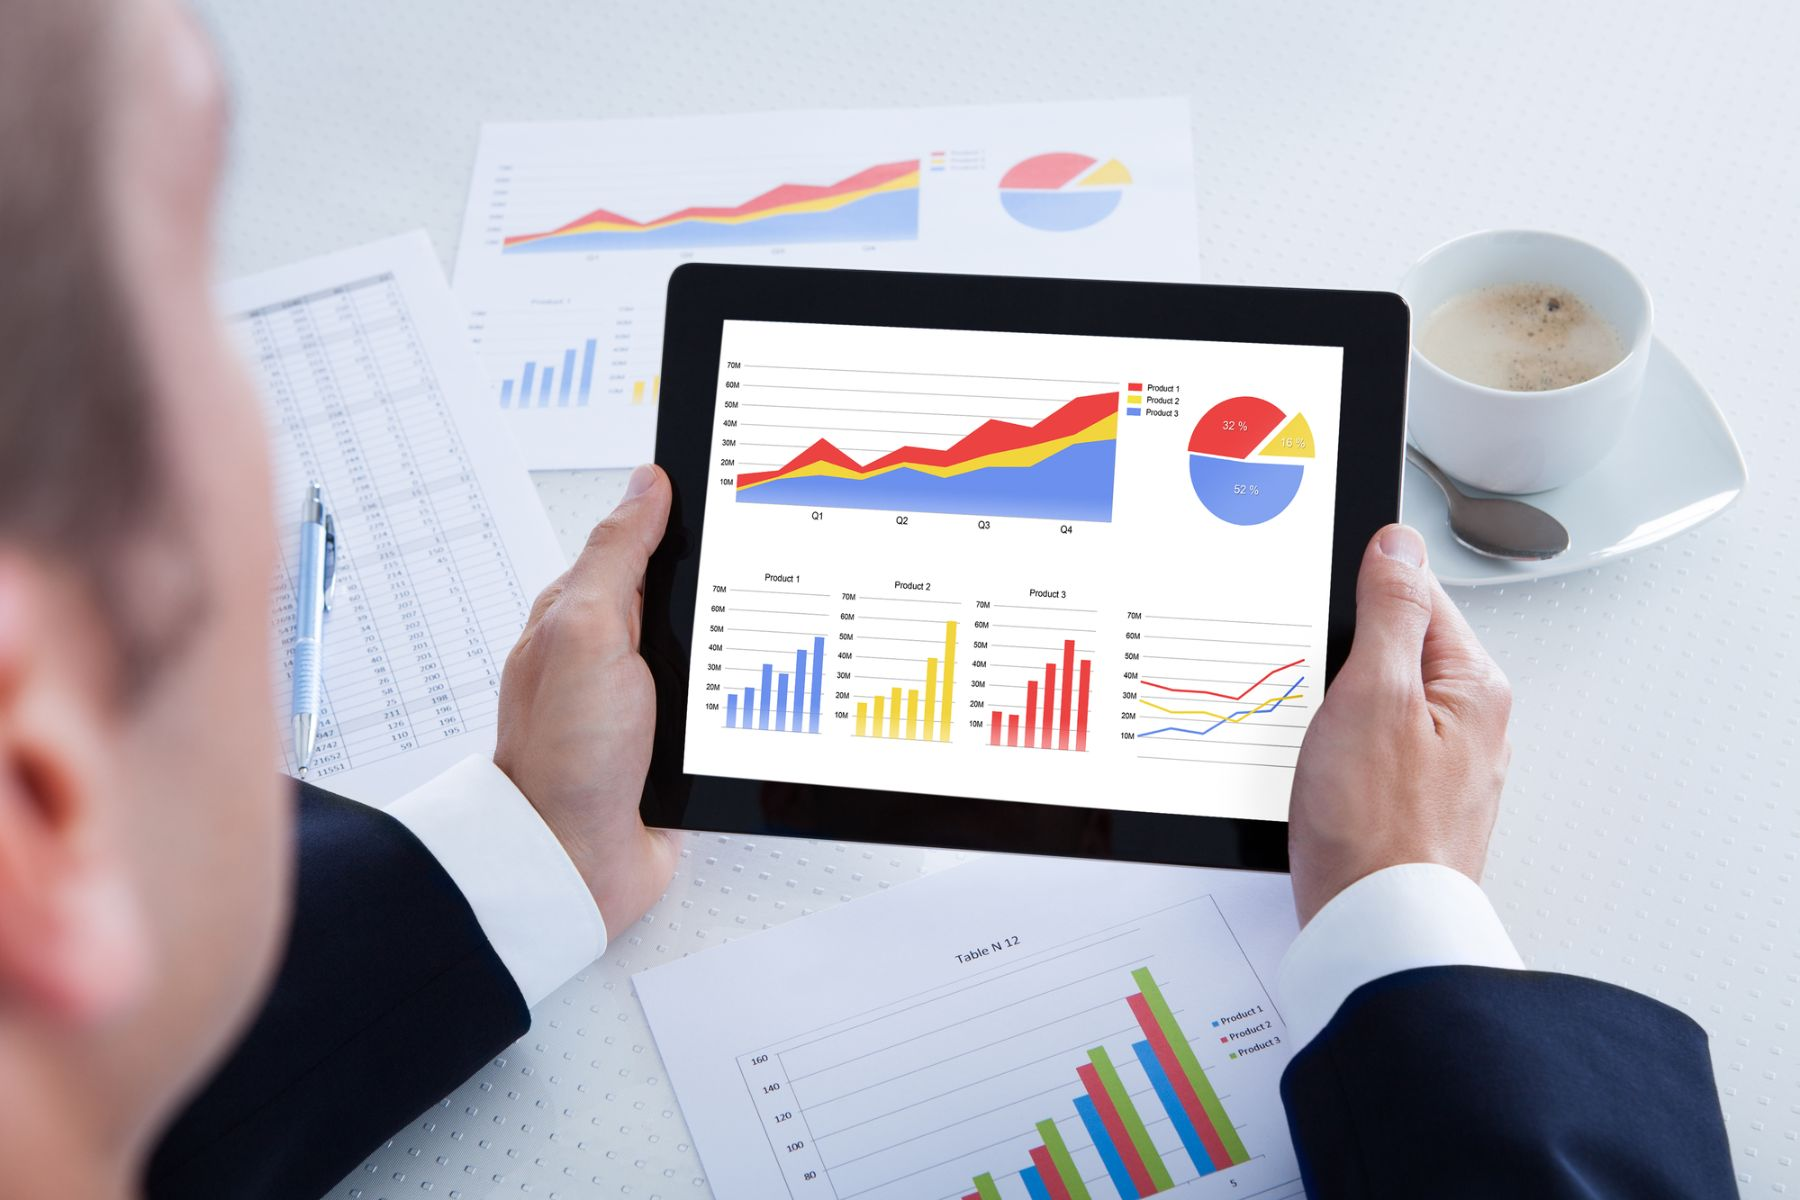 Man looking at data graphs and charts on a tablet and documents